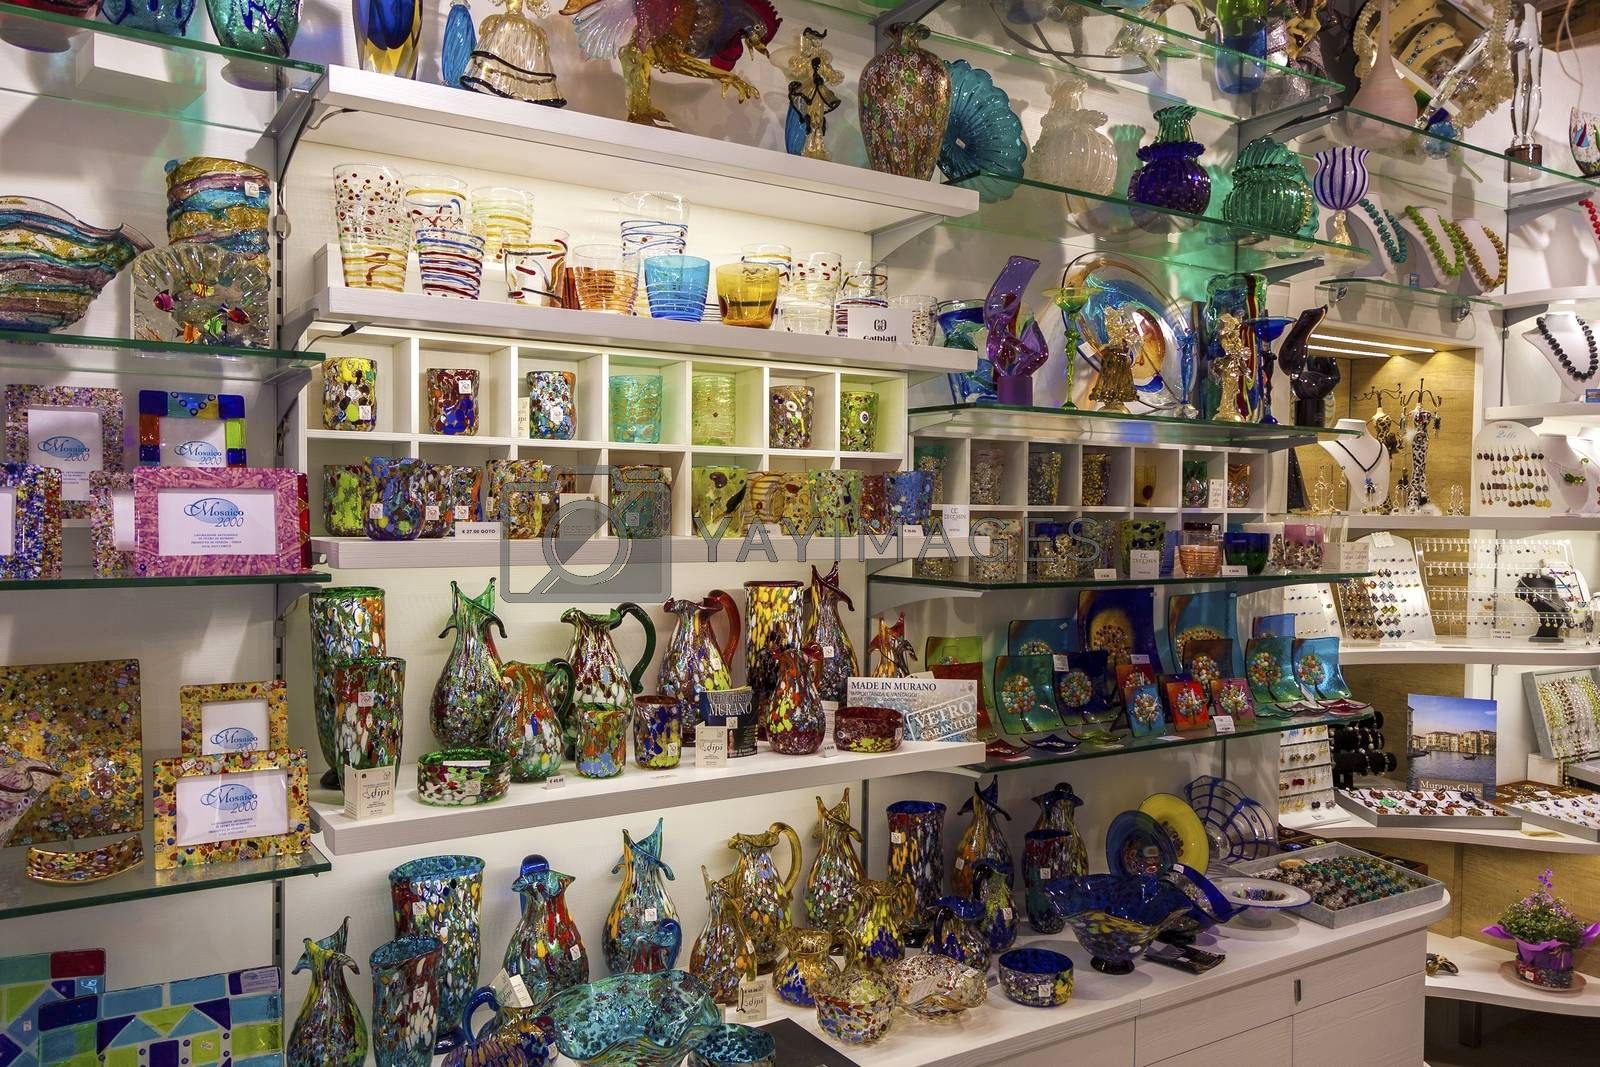 Venice, Italy - May 29, 2015: Murano glass artworks on display in shop in island of Murano, Venice.